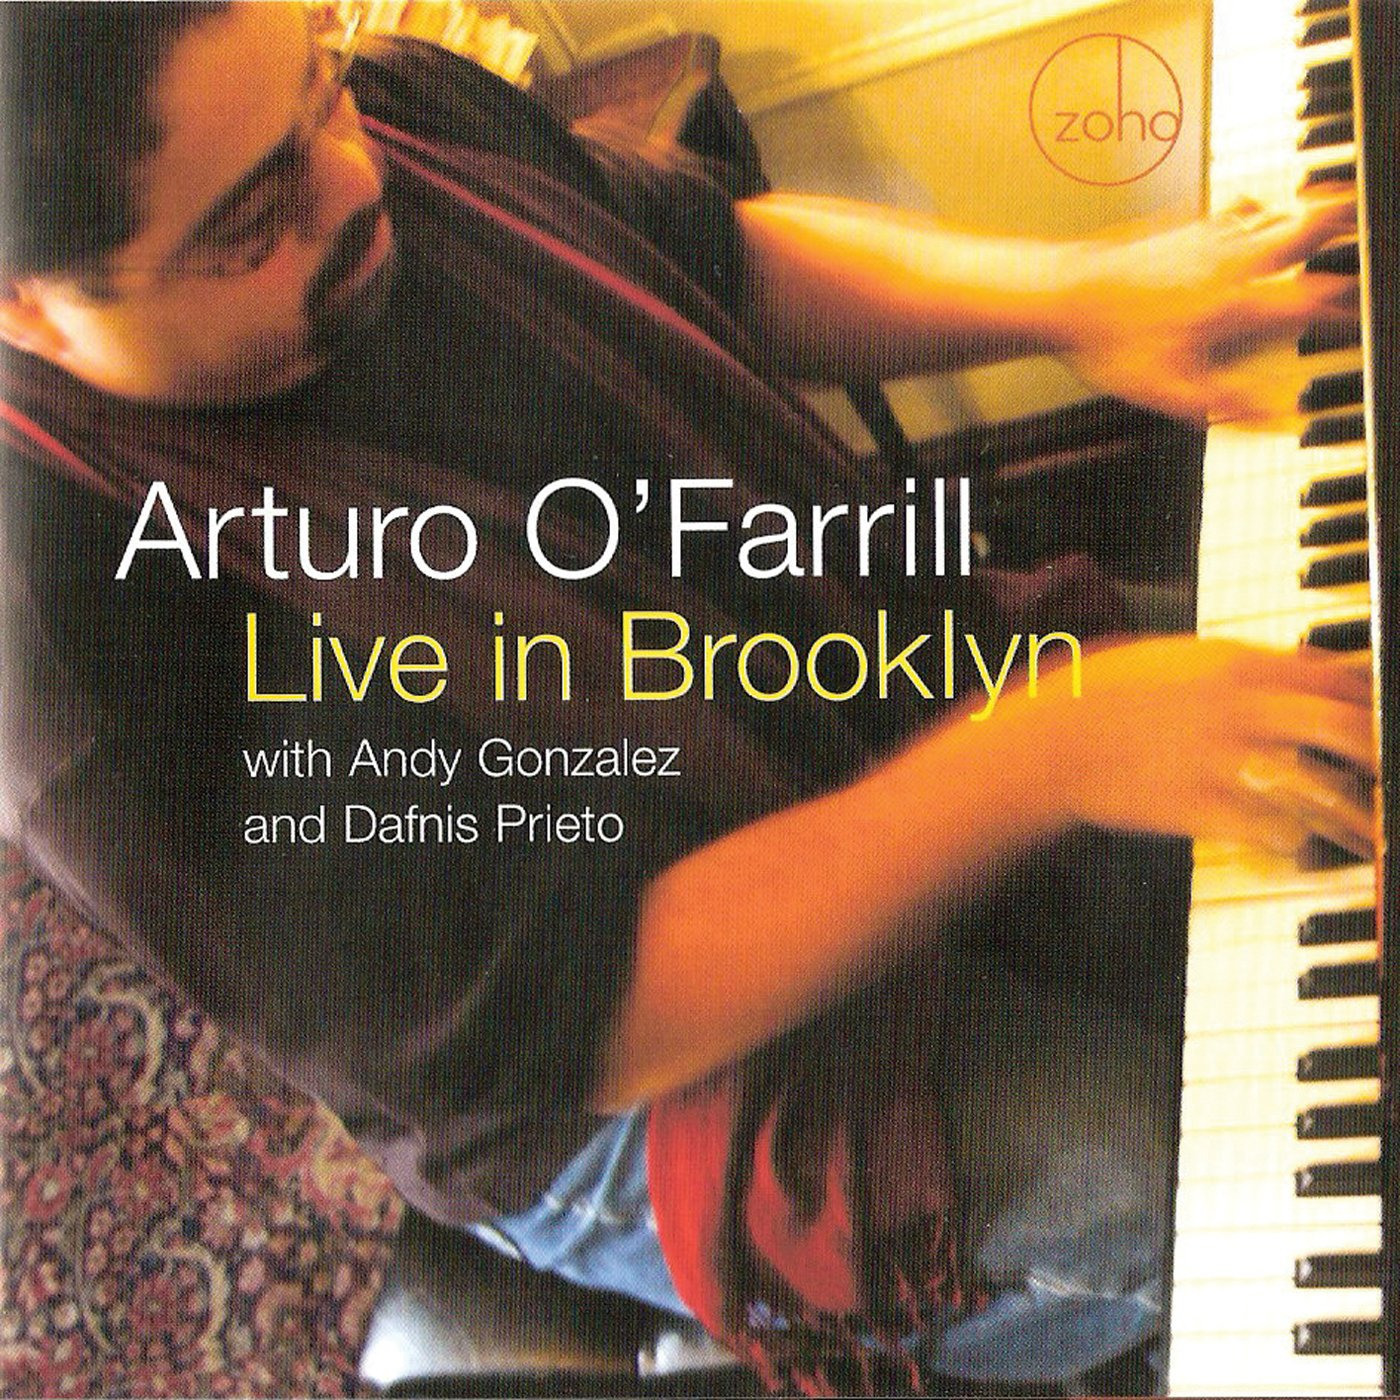 O'FARRILL, ARTURO - LIVE IN BROOKLYN by Zoho Music